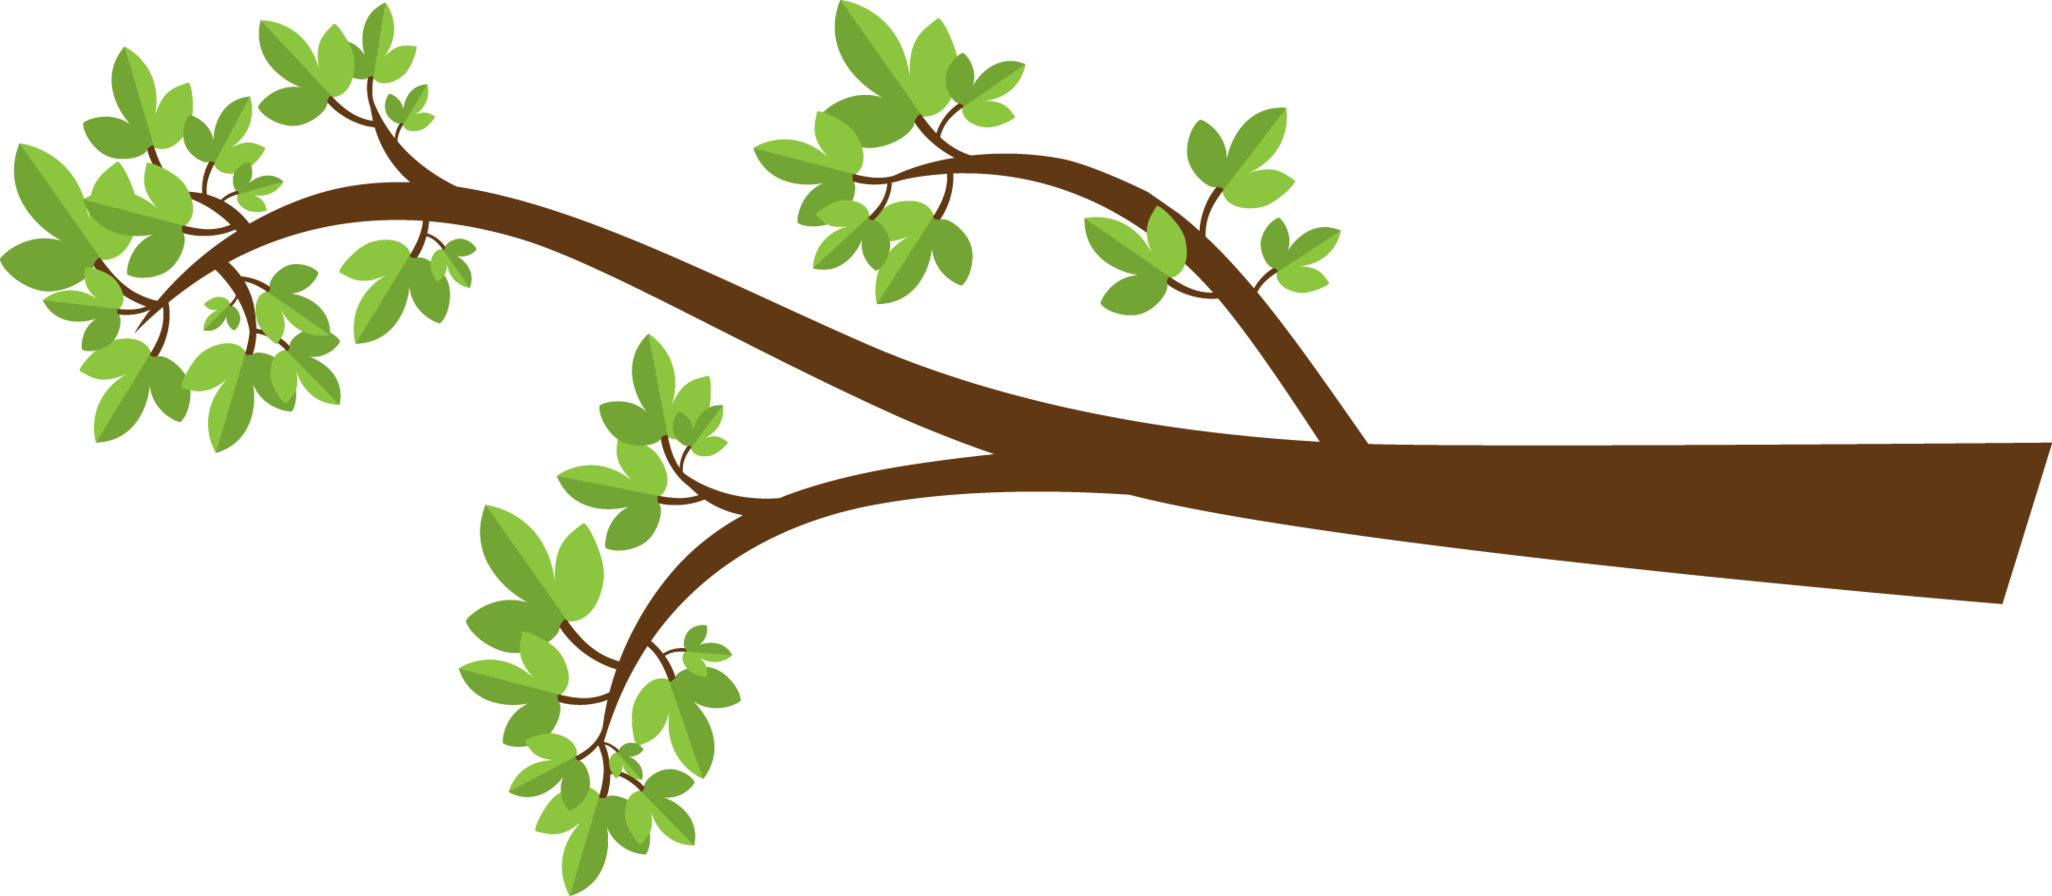 Free clipart tree branch 5 » Clipart Station.